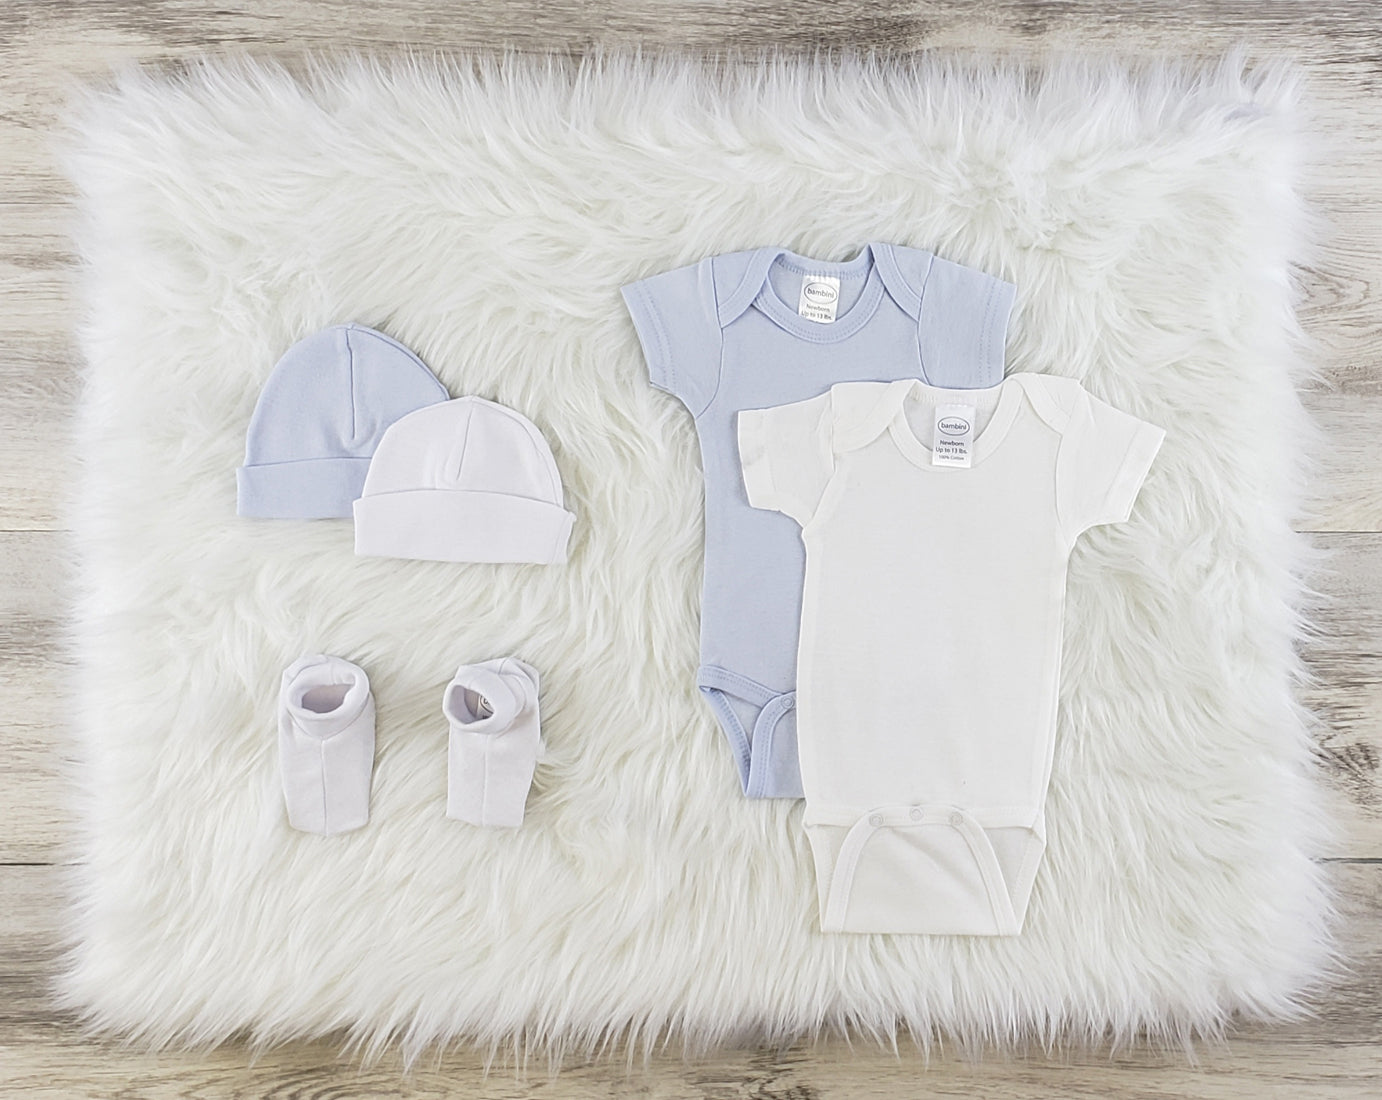 Bambini 5 Pc Layette Baby Clothes Set